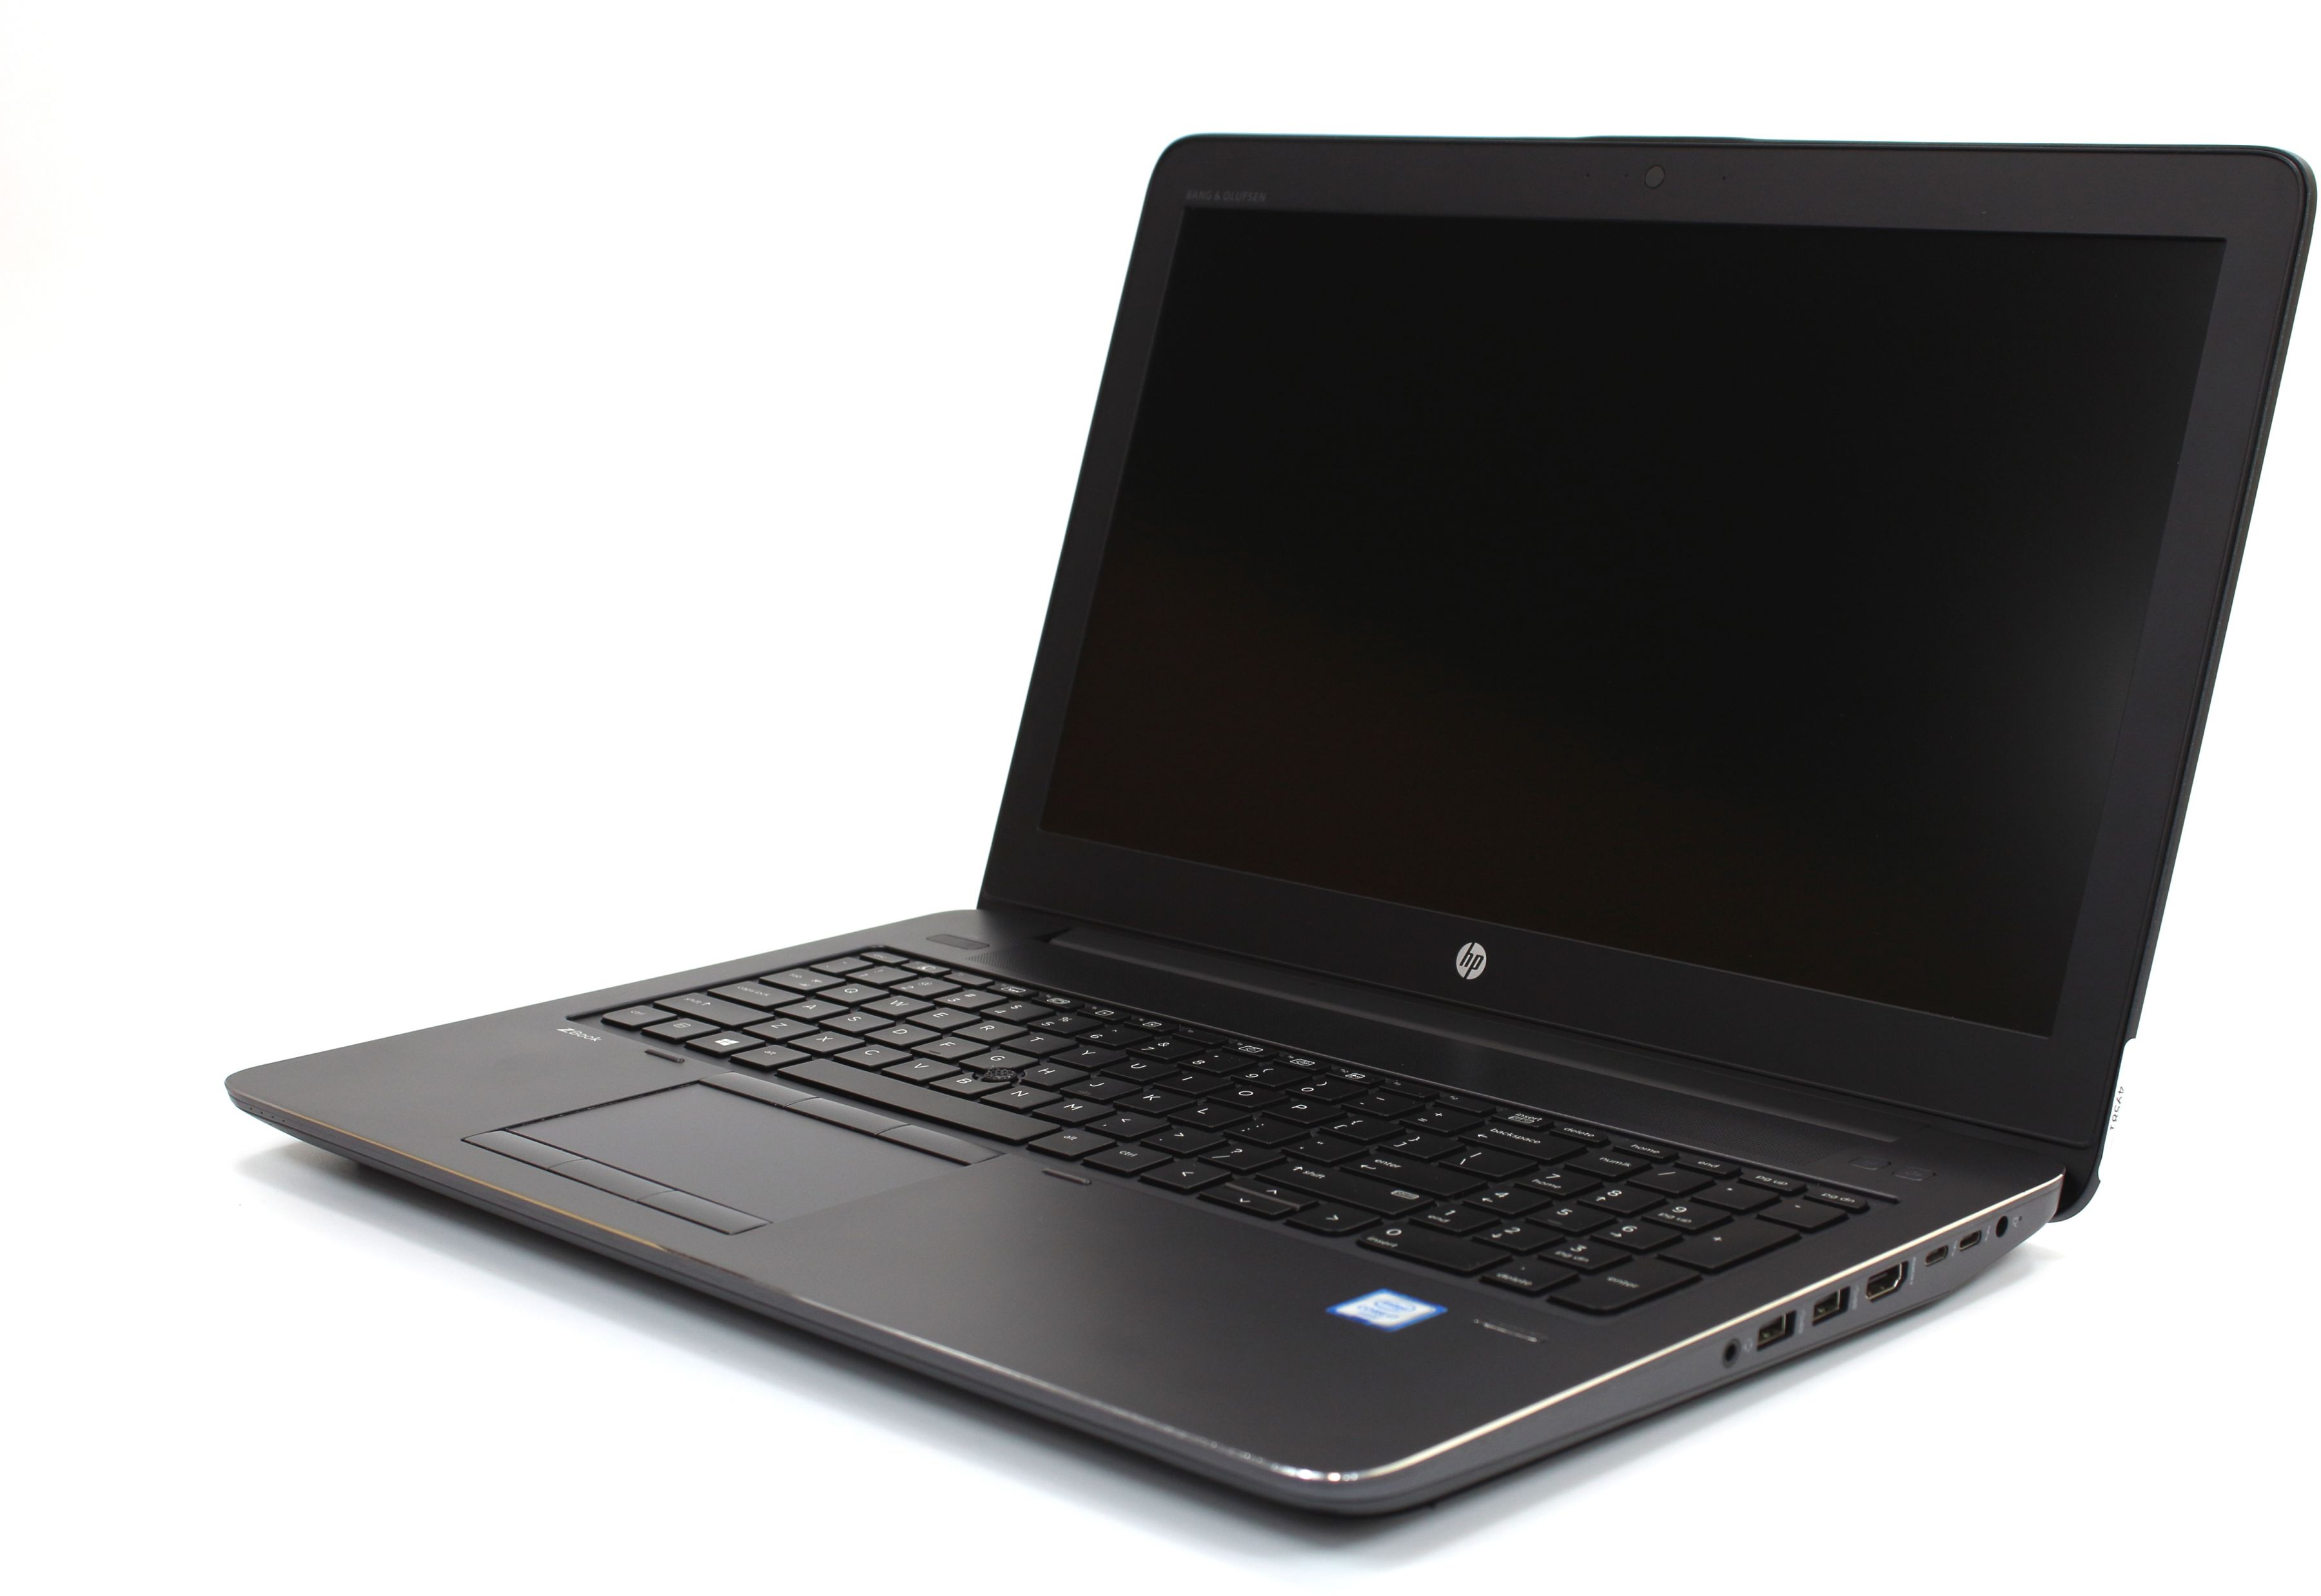 "Laptop HP ZBook 15 G3 15.6"" FullHD i7-6700MQ 4x3.50GHz 32GB 256GB SSD nVidia M600M Windows 7/8/10 Pro (Klasa A)"